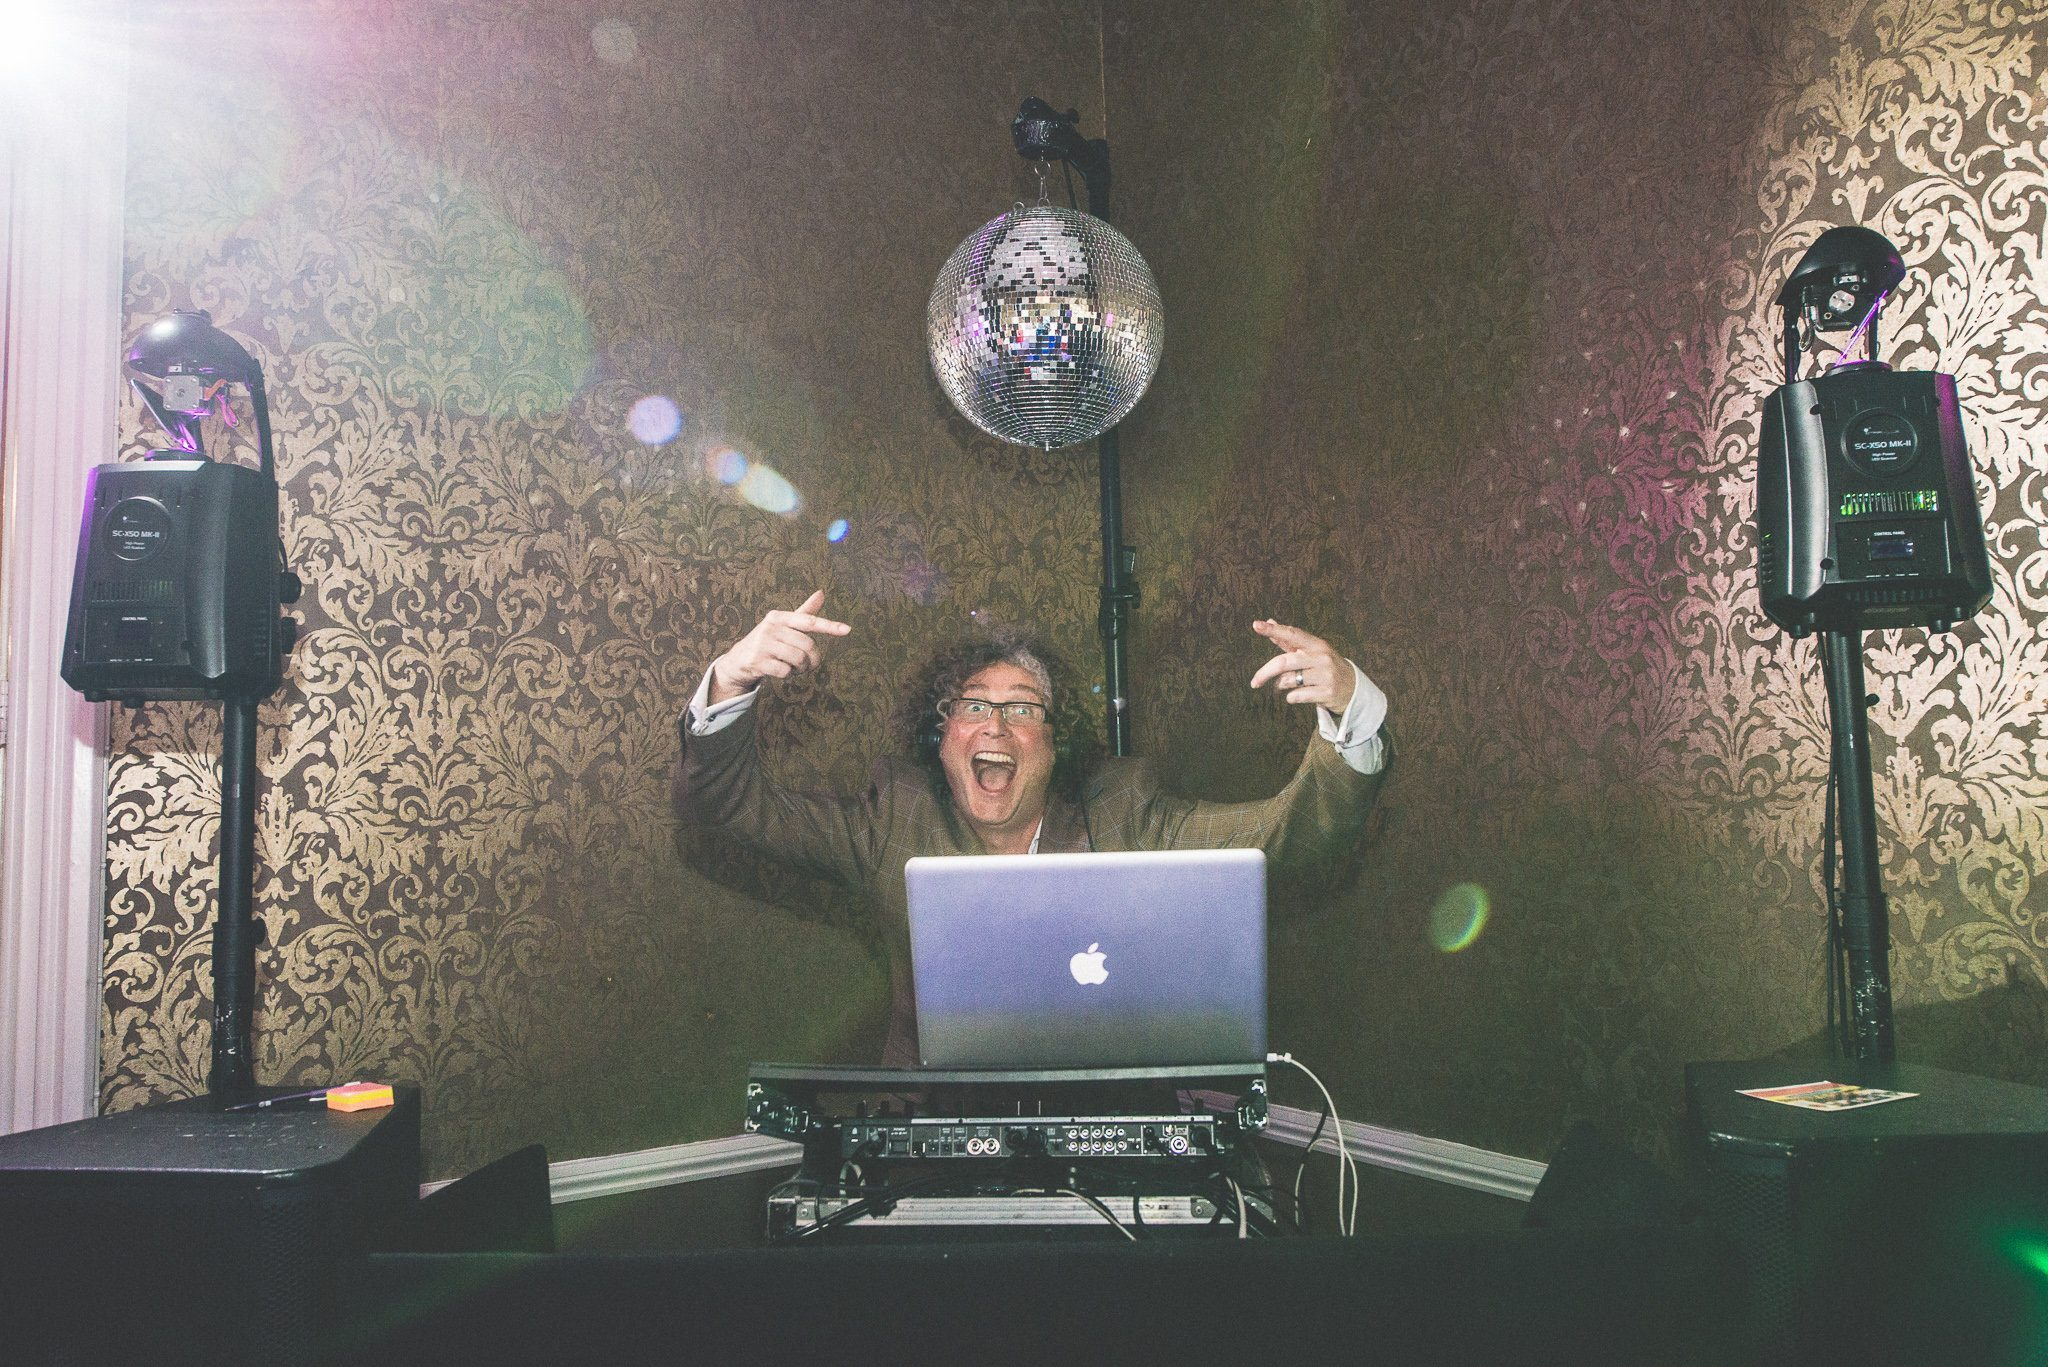 A guest is VERY EXCITED at the prospect of DJing as the party gets going.